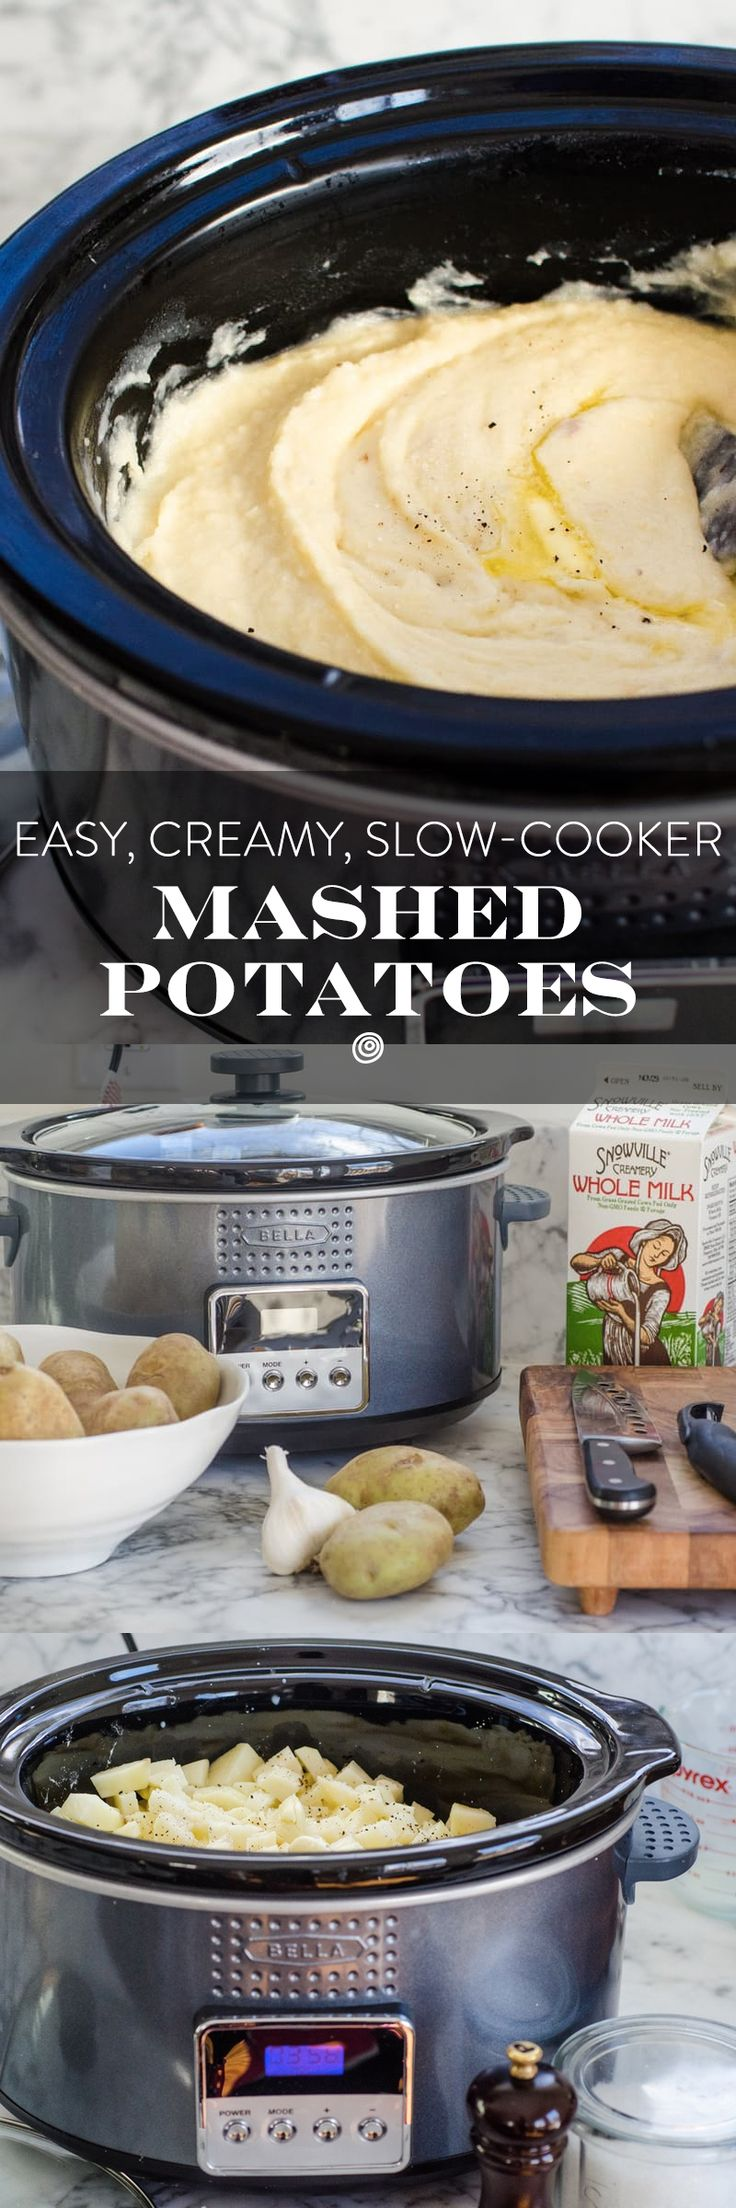 Creamy Slow Cooker Mashed Potatoes. This crock pot recipe is an incredible trick for preparing sides and side dishes to feed a crowd for a party or for a holiday like thanksgiving or christmas!